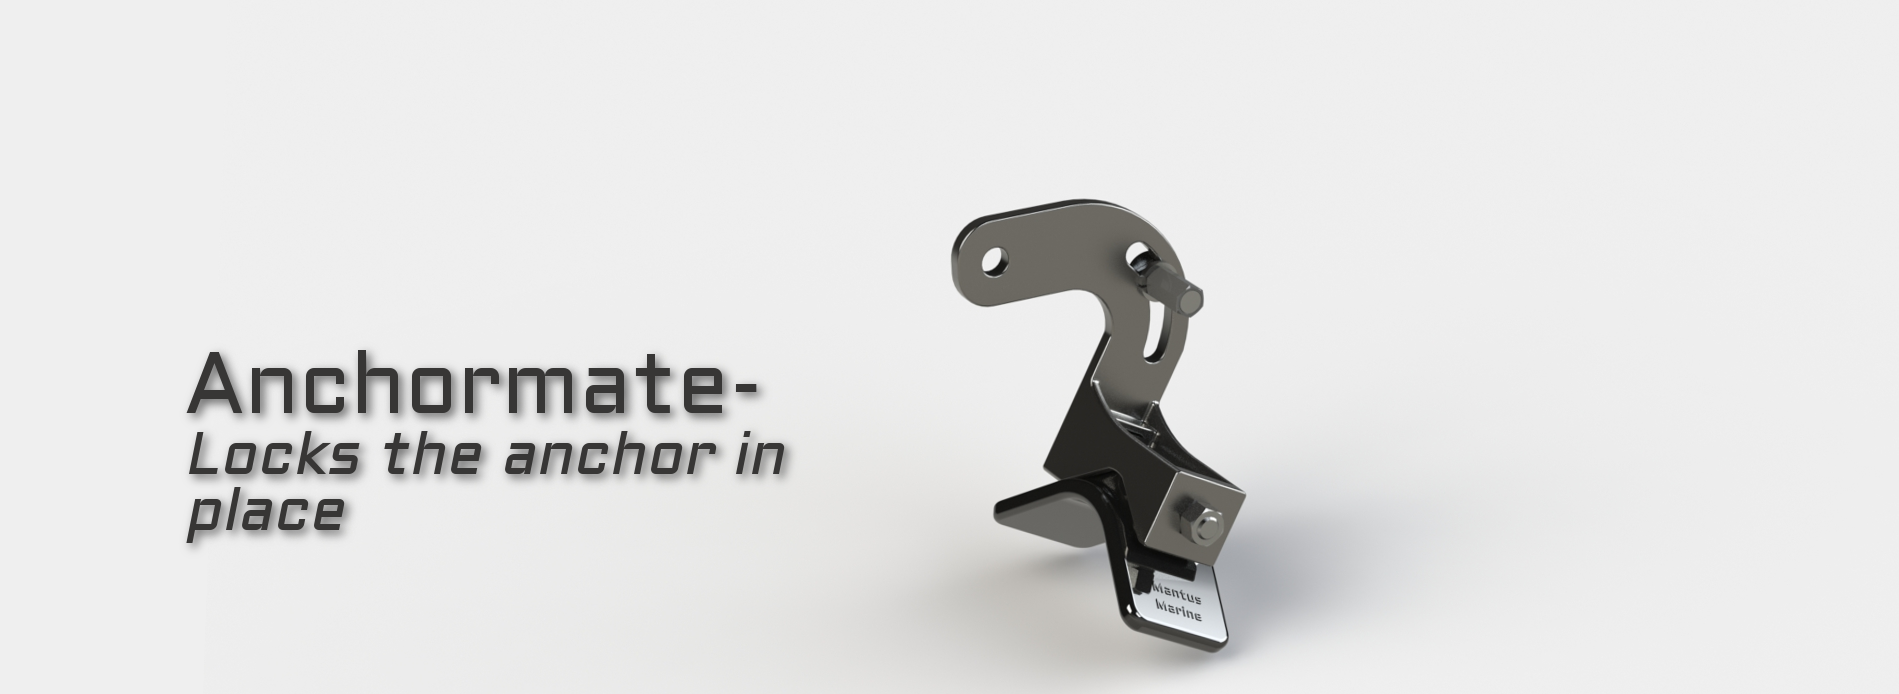 Anchormate website slider 2